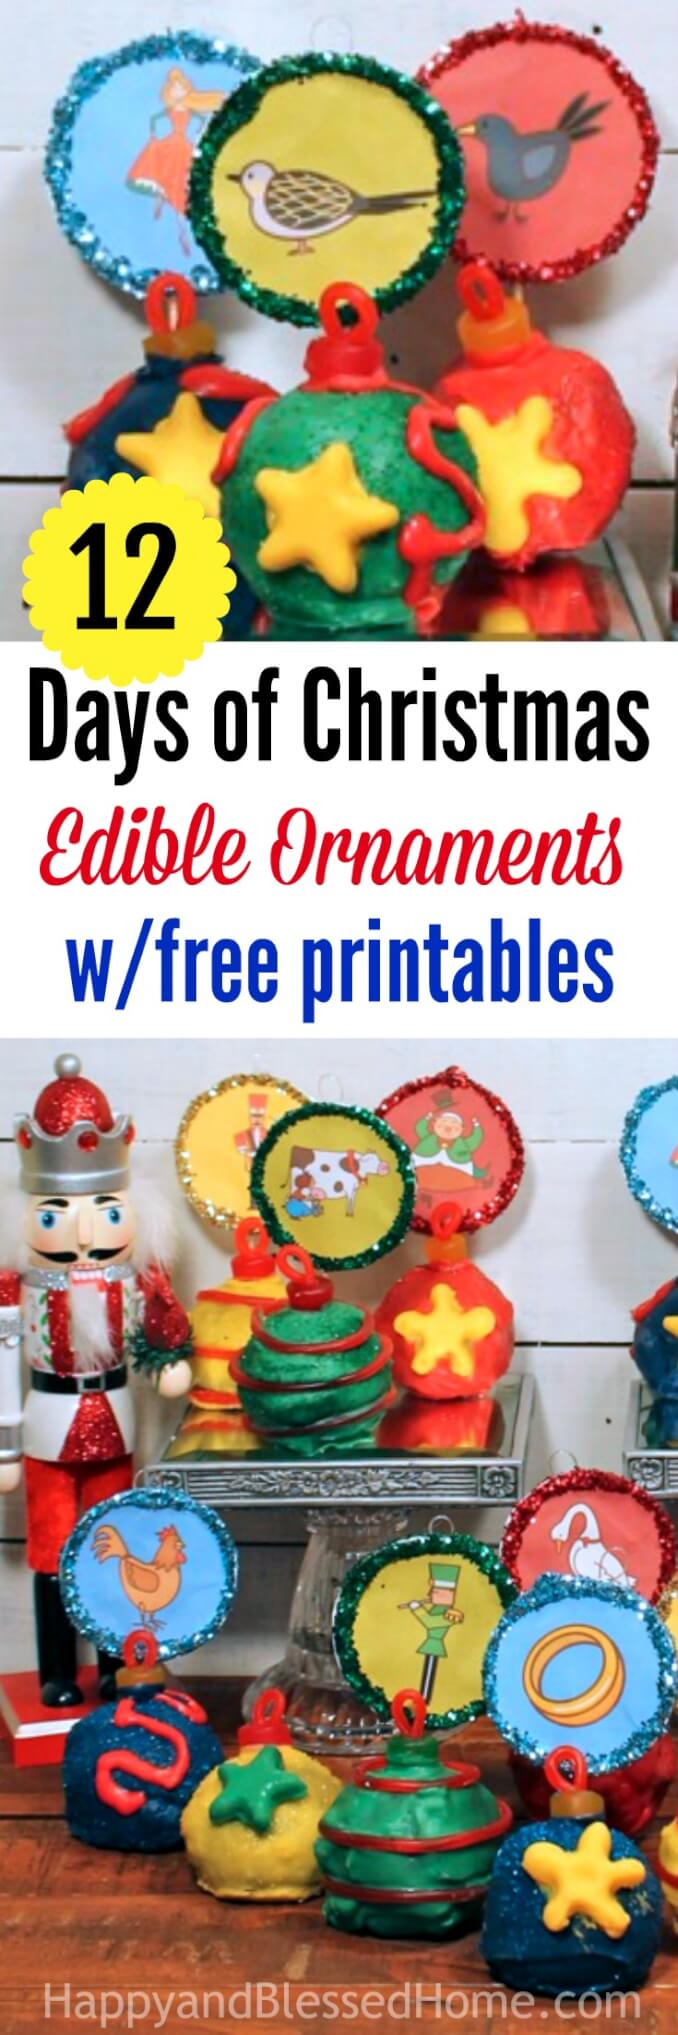 FREE 12 Days of Christmas Printable Ornaments from HappyandBlessedHome.com